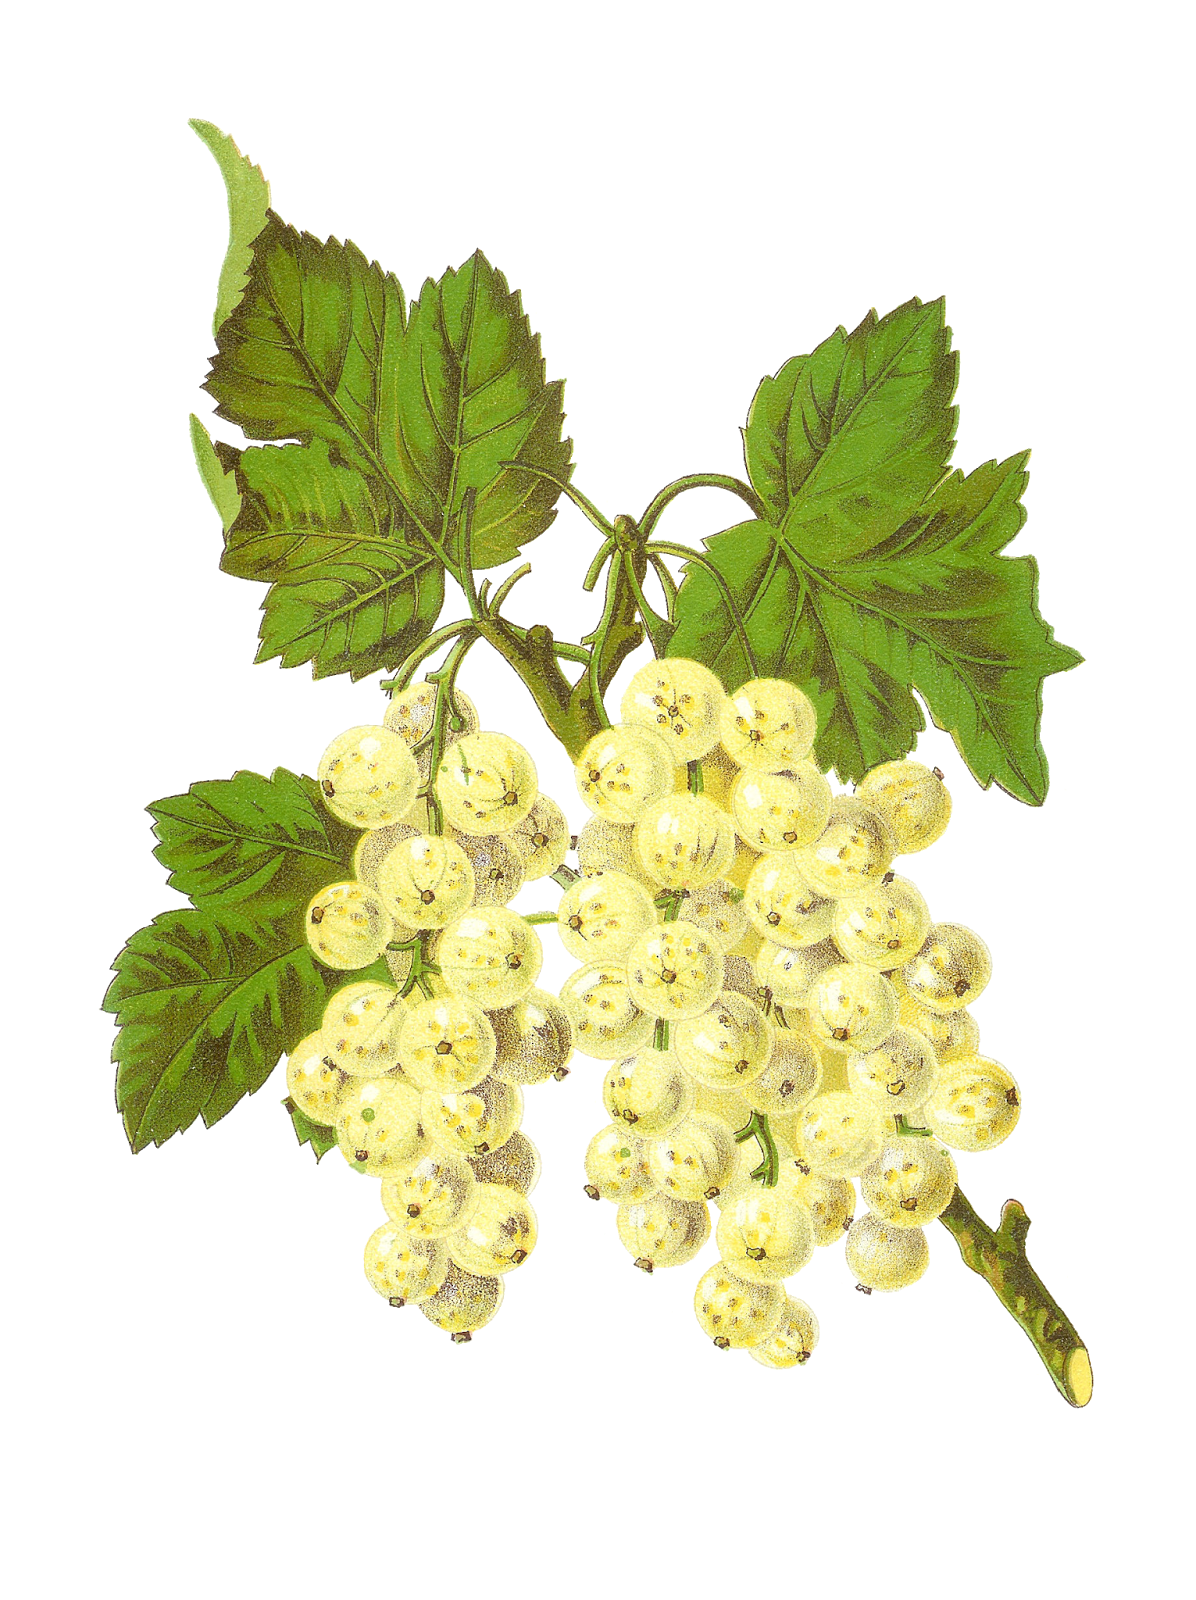 Antique Images: Free Digital Fruit Graphics of White ...